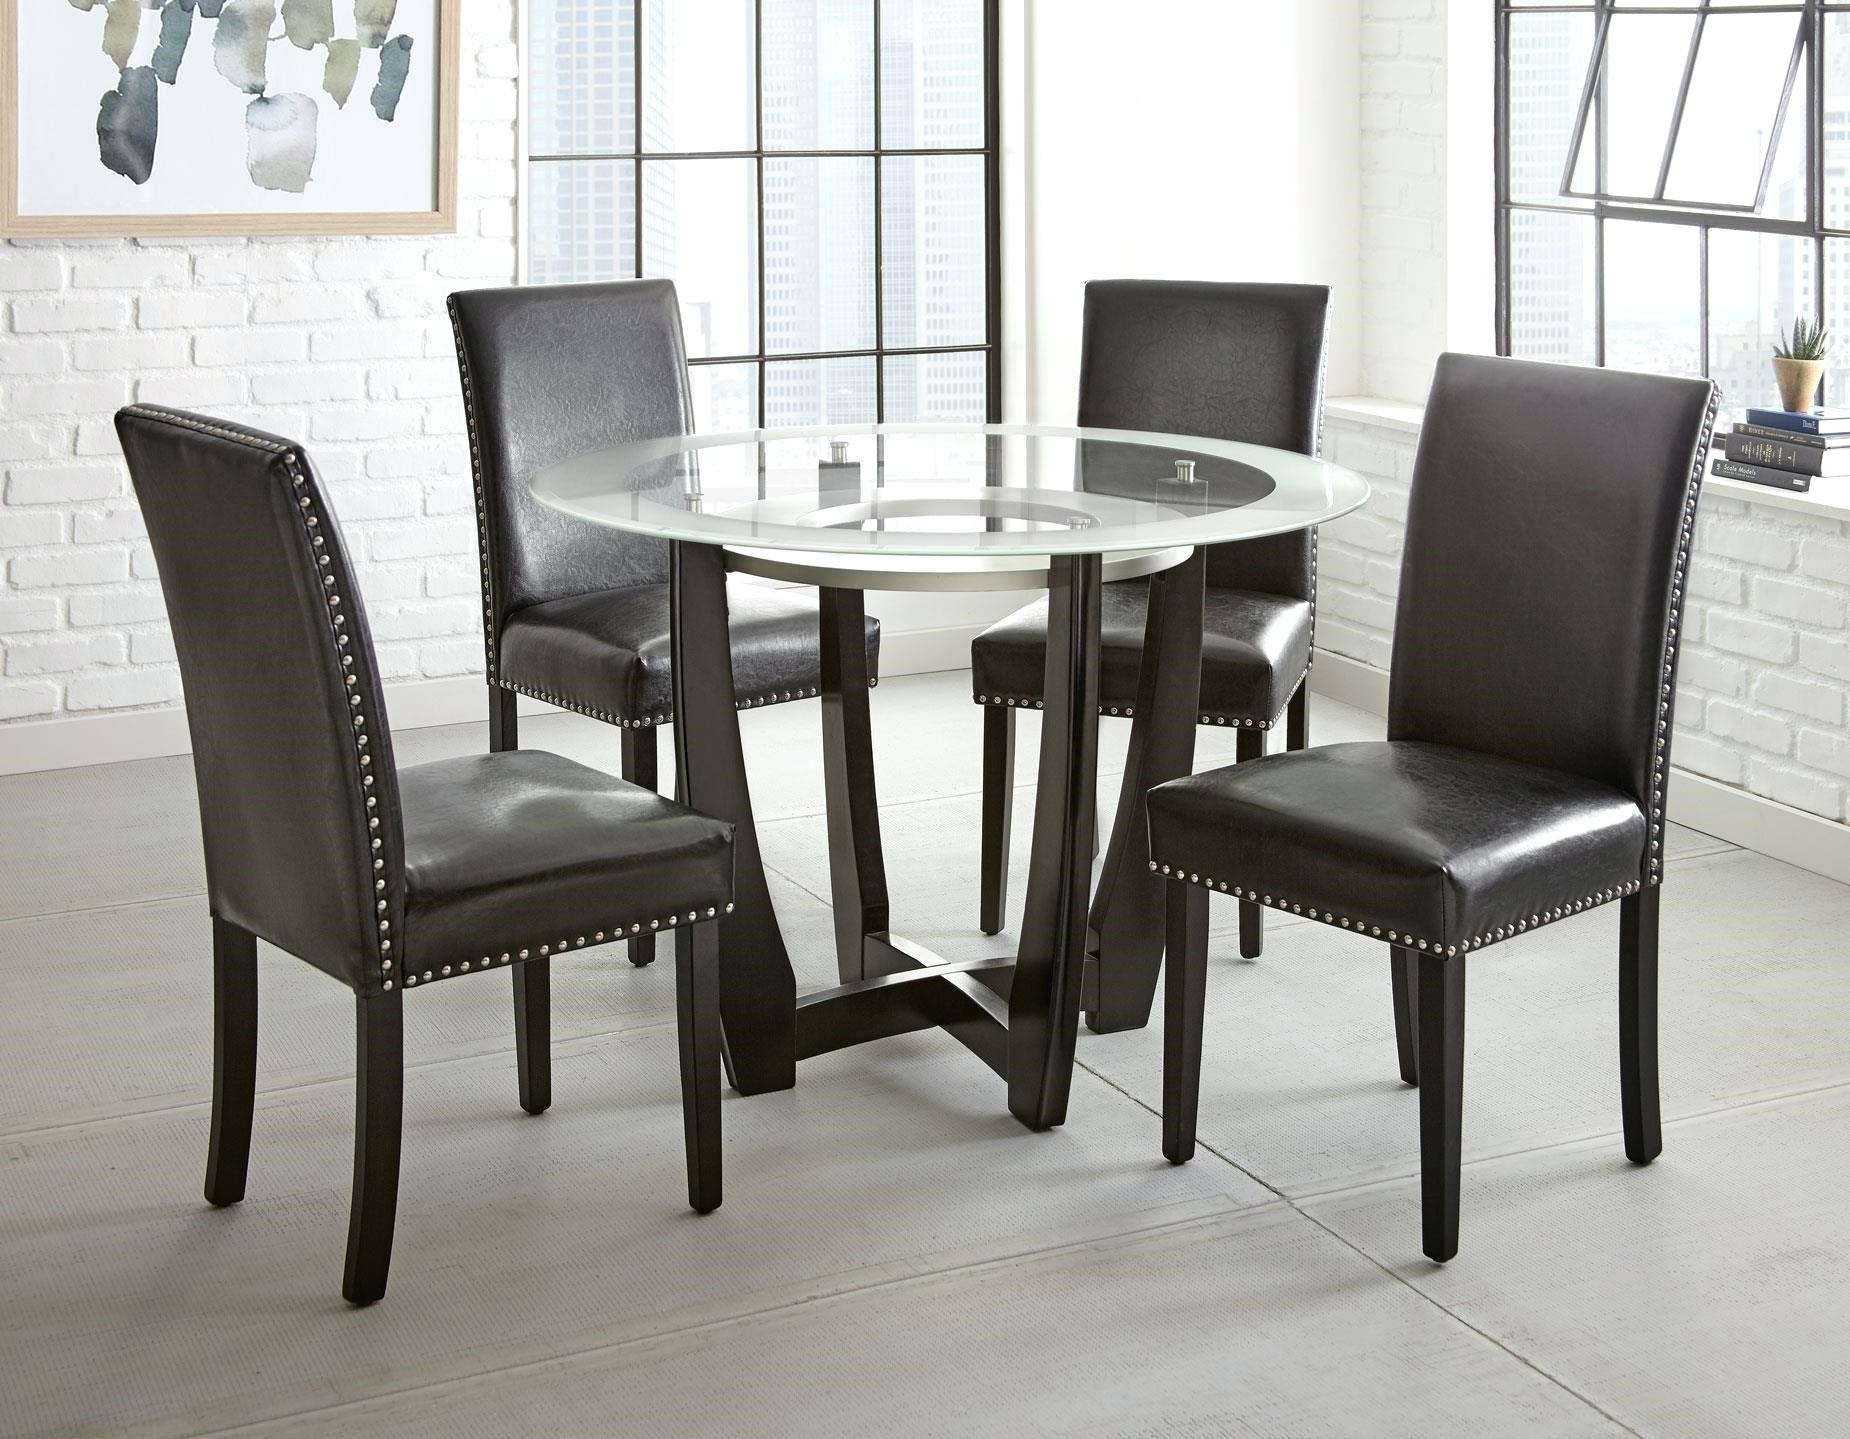 5 Piece Dining Sets Kmart Cora Set Table With Bench Jaclyn Smith Intended For 2018 Cora 5 Piece Dining Sets (Photo 6 of 20)